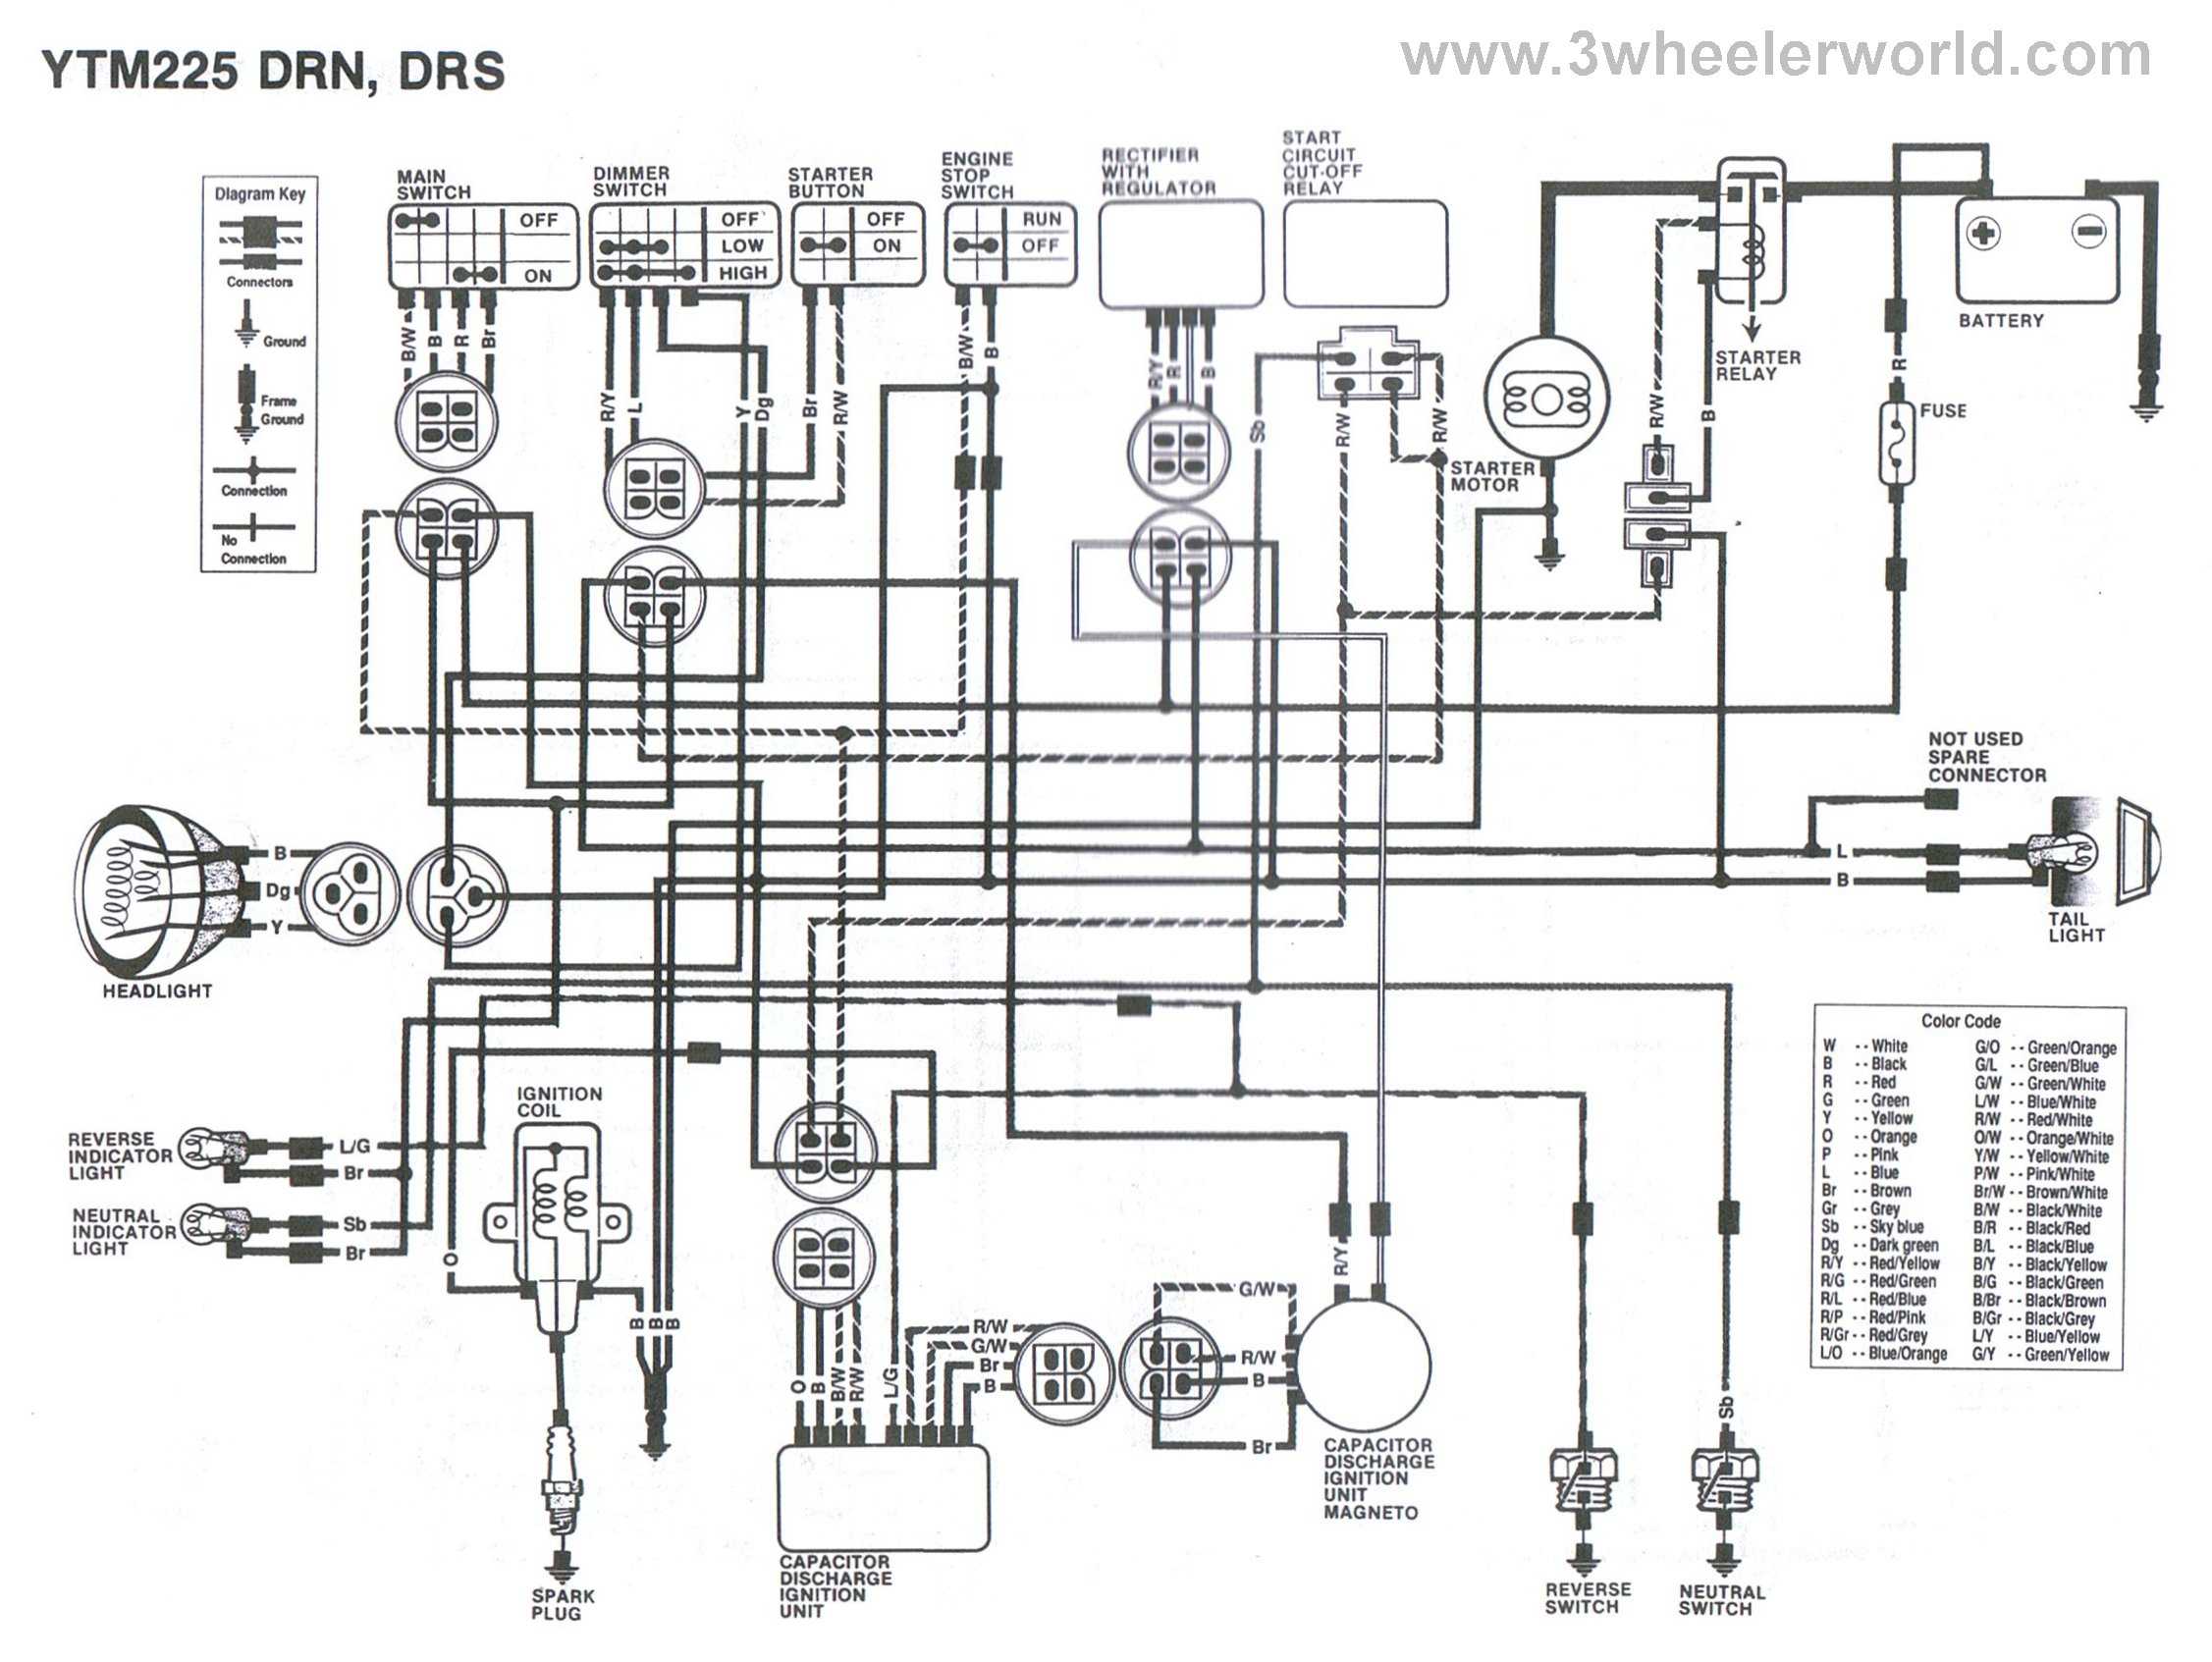 YTM225DRNDRS 3 wheeler world tech help yamaha wiring diagrams yamaha ttr 225 wiring diagram at webbmarketing.co